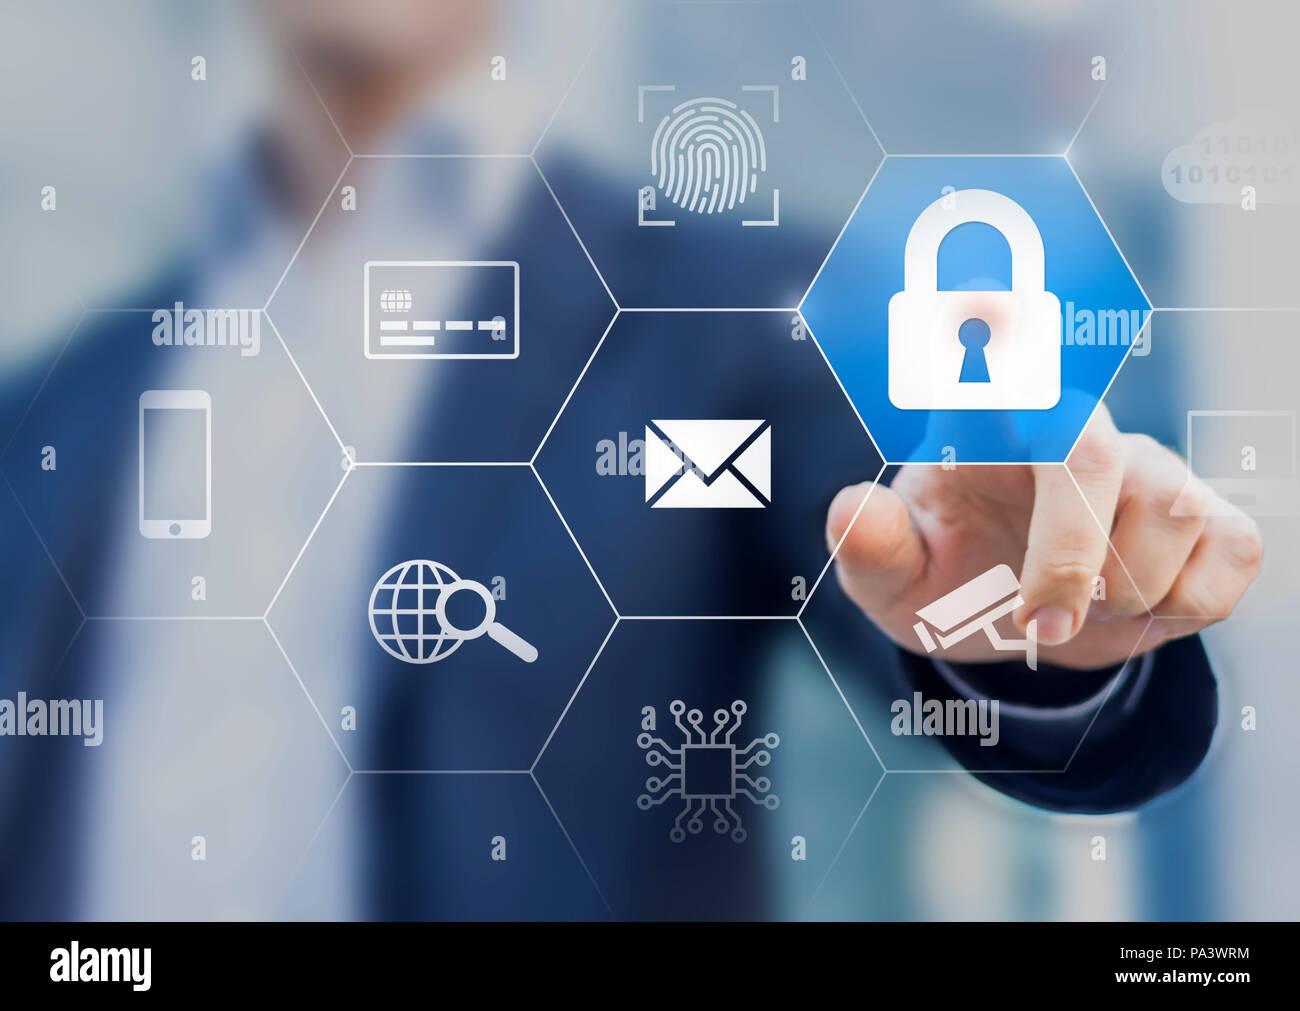 Cybersecurity on internet with secure access website and email, protection for credit card payment, biometric fingerprint, cyber security for personal - Stock Image